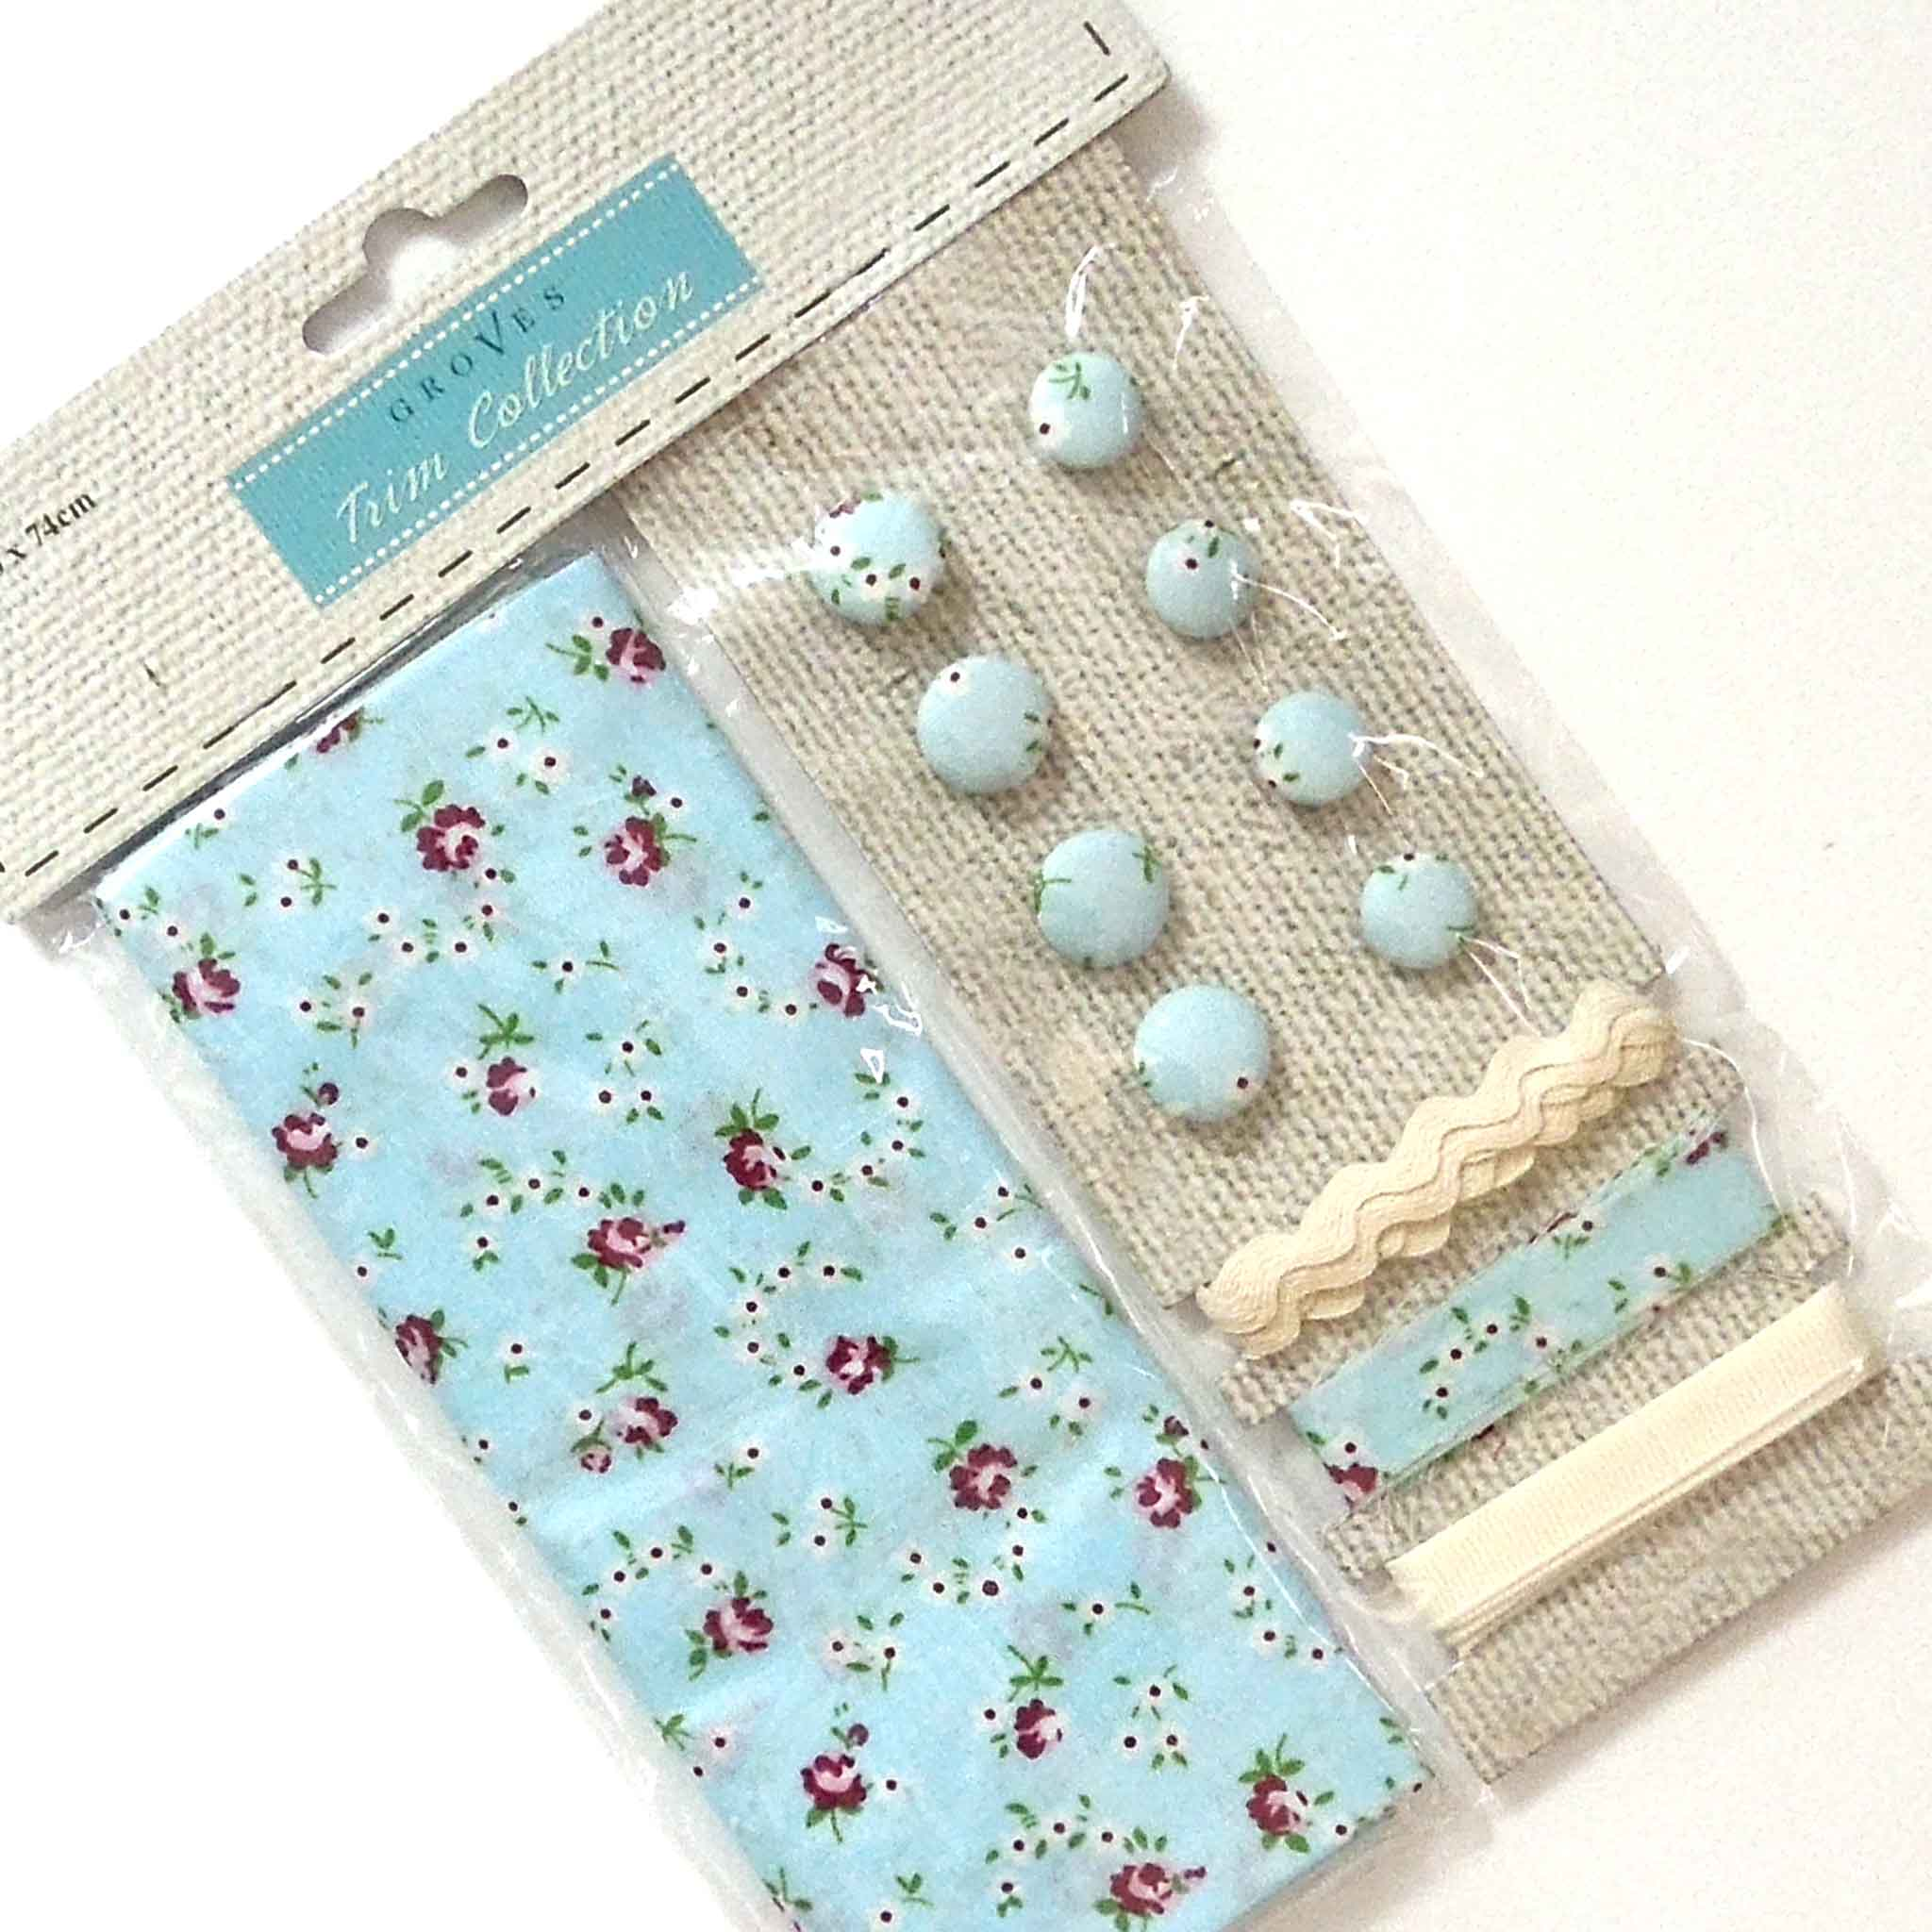 Blue Flower Cotton Fabric Craft Pack - Fabric and Ribbon